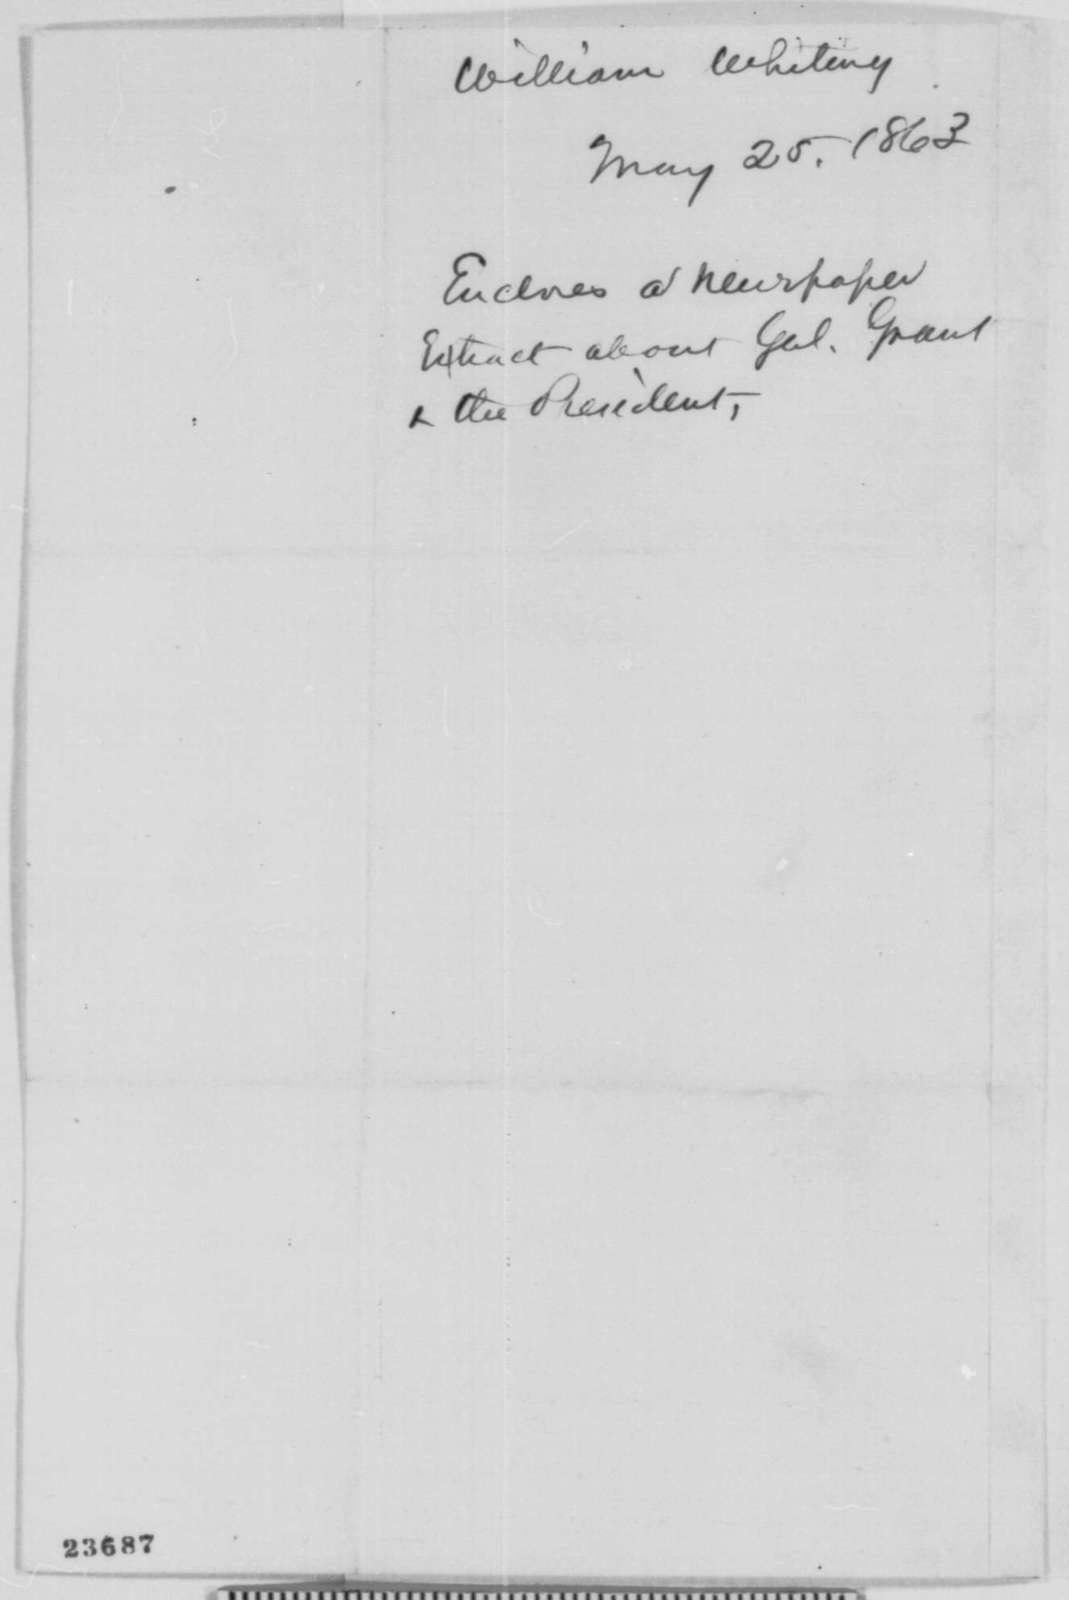 William Whiting to John G. Nicolay, Monday, May 25, 1863  (Sends newspaper clipping)